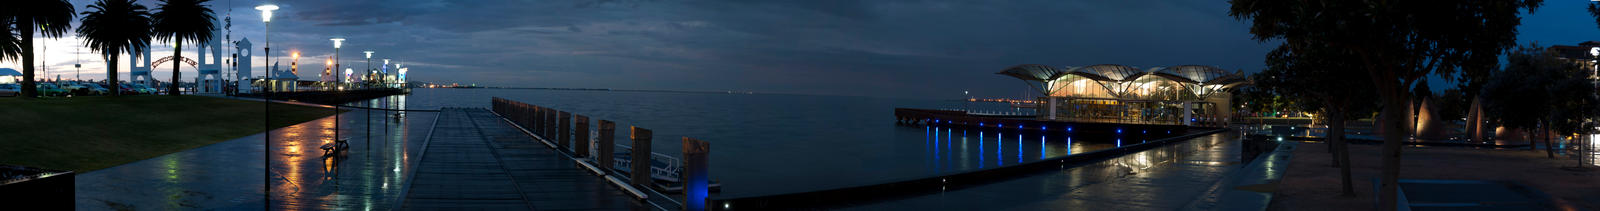 Waterfront Panorama By Night by solkee